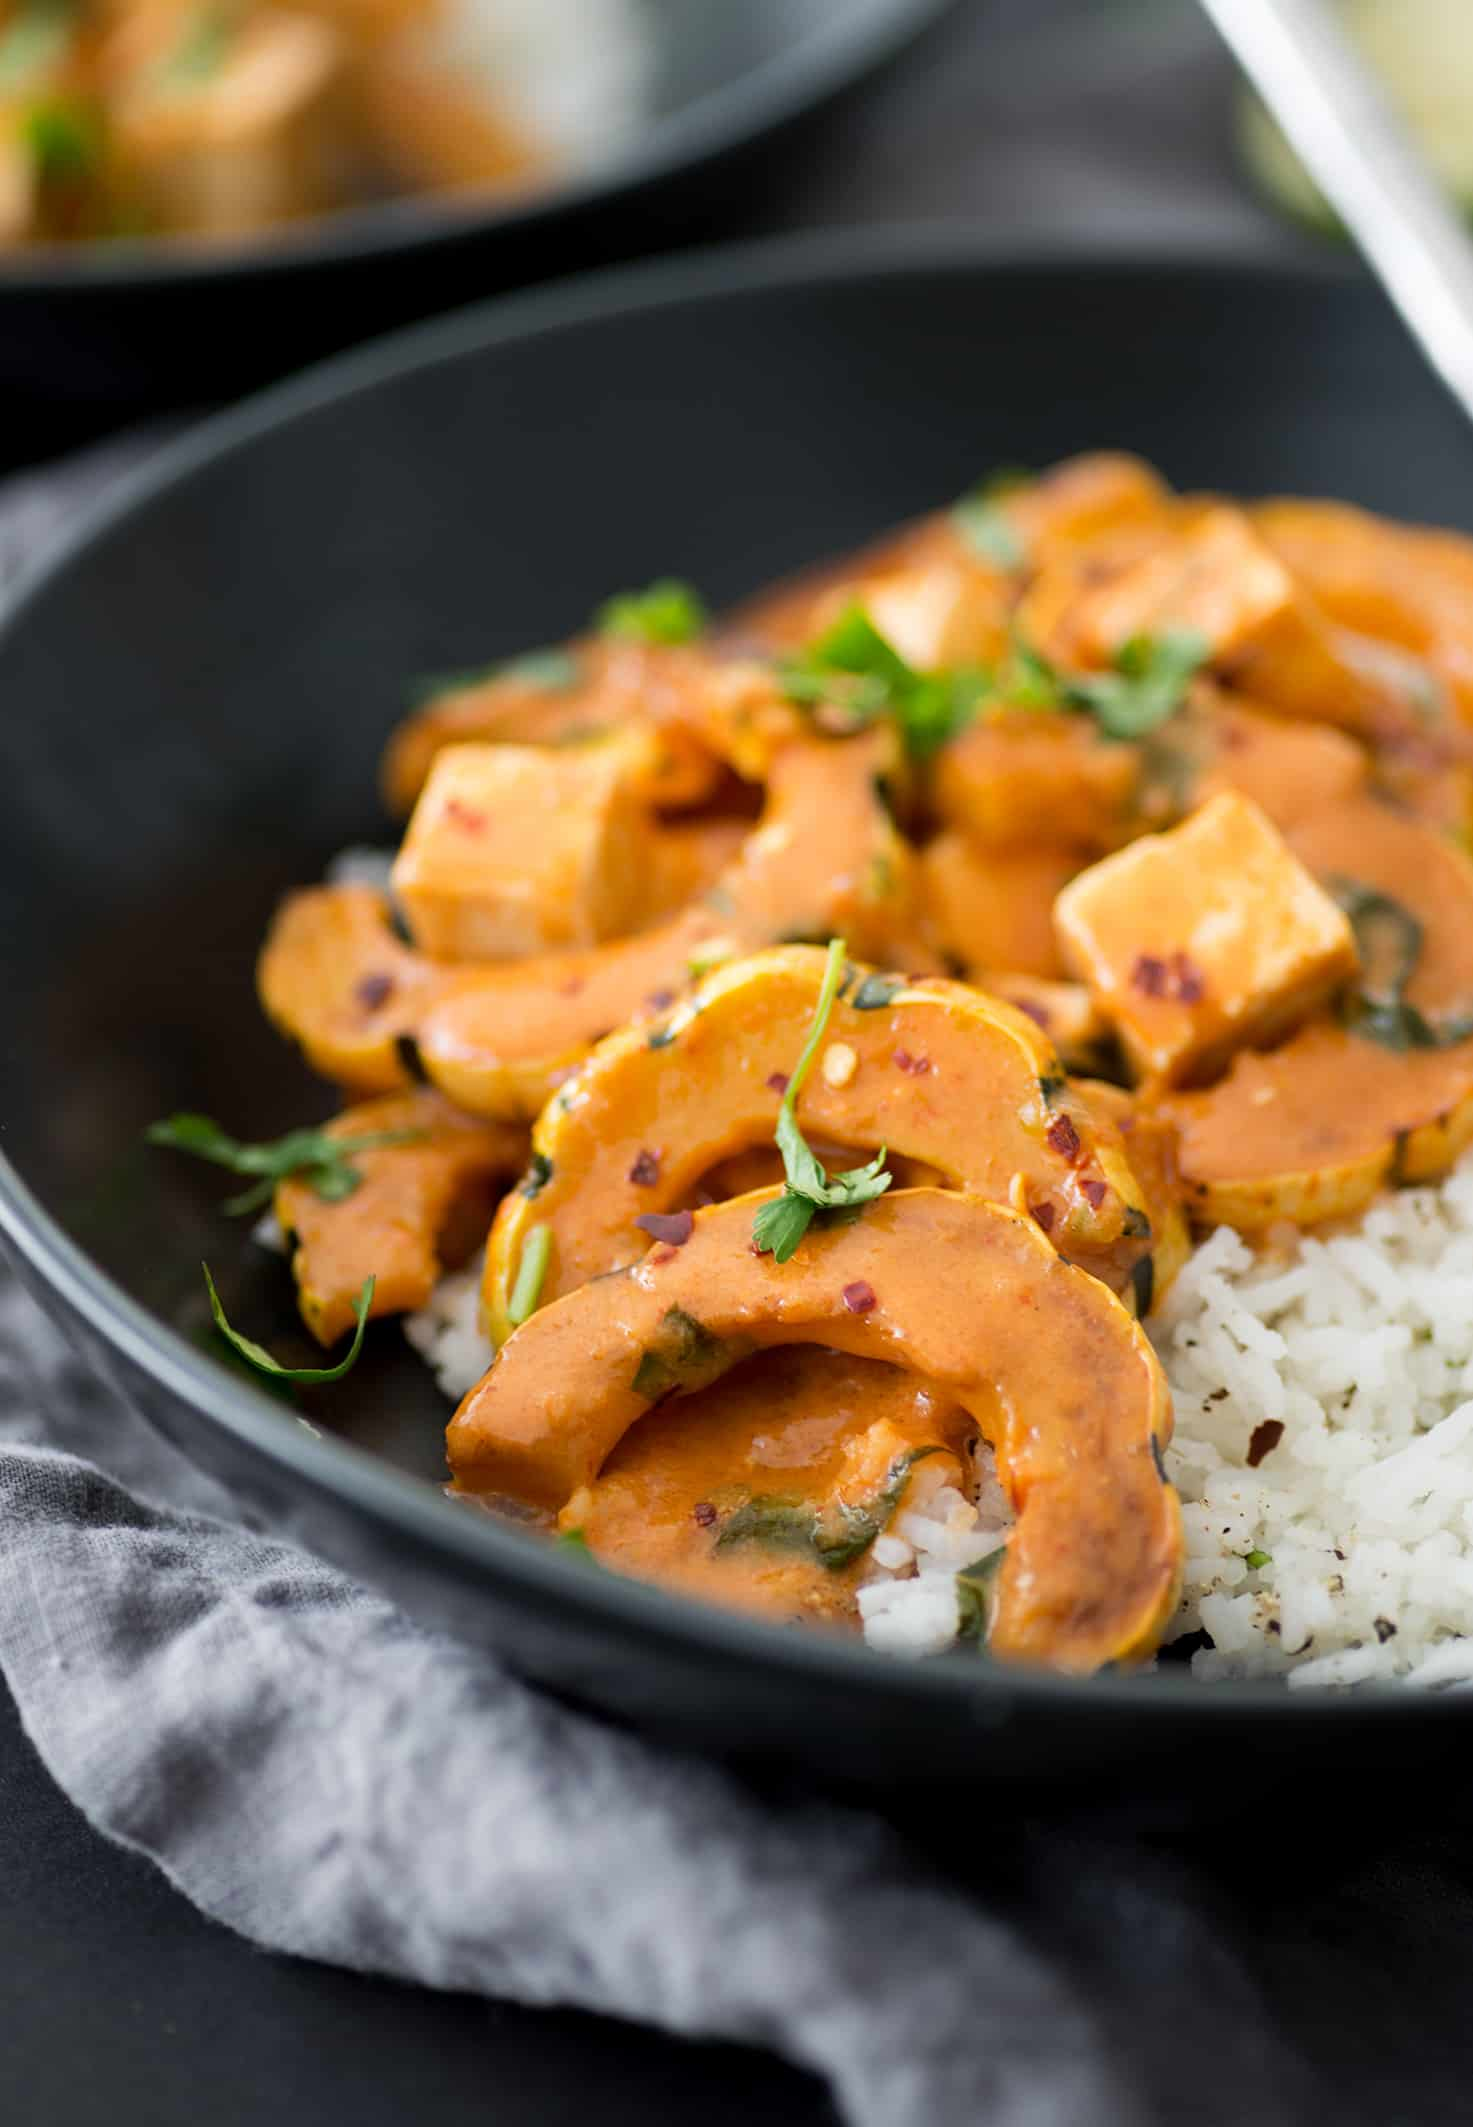 Vegan Delicata Squash Red Curry! If you're looking for a healthy, plant-based dinner- this is it! Simmered tofu and squash in a mild red curry sauce. Easily gluten-free.   www.delishknowledge.com